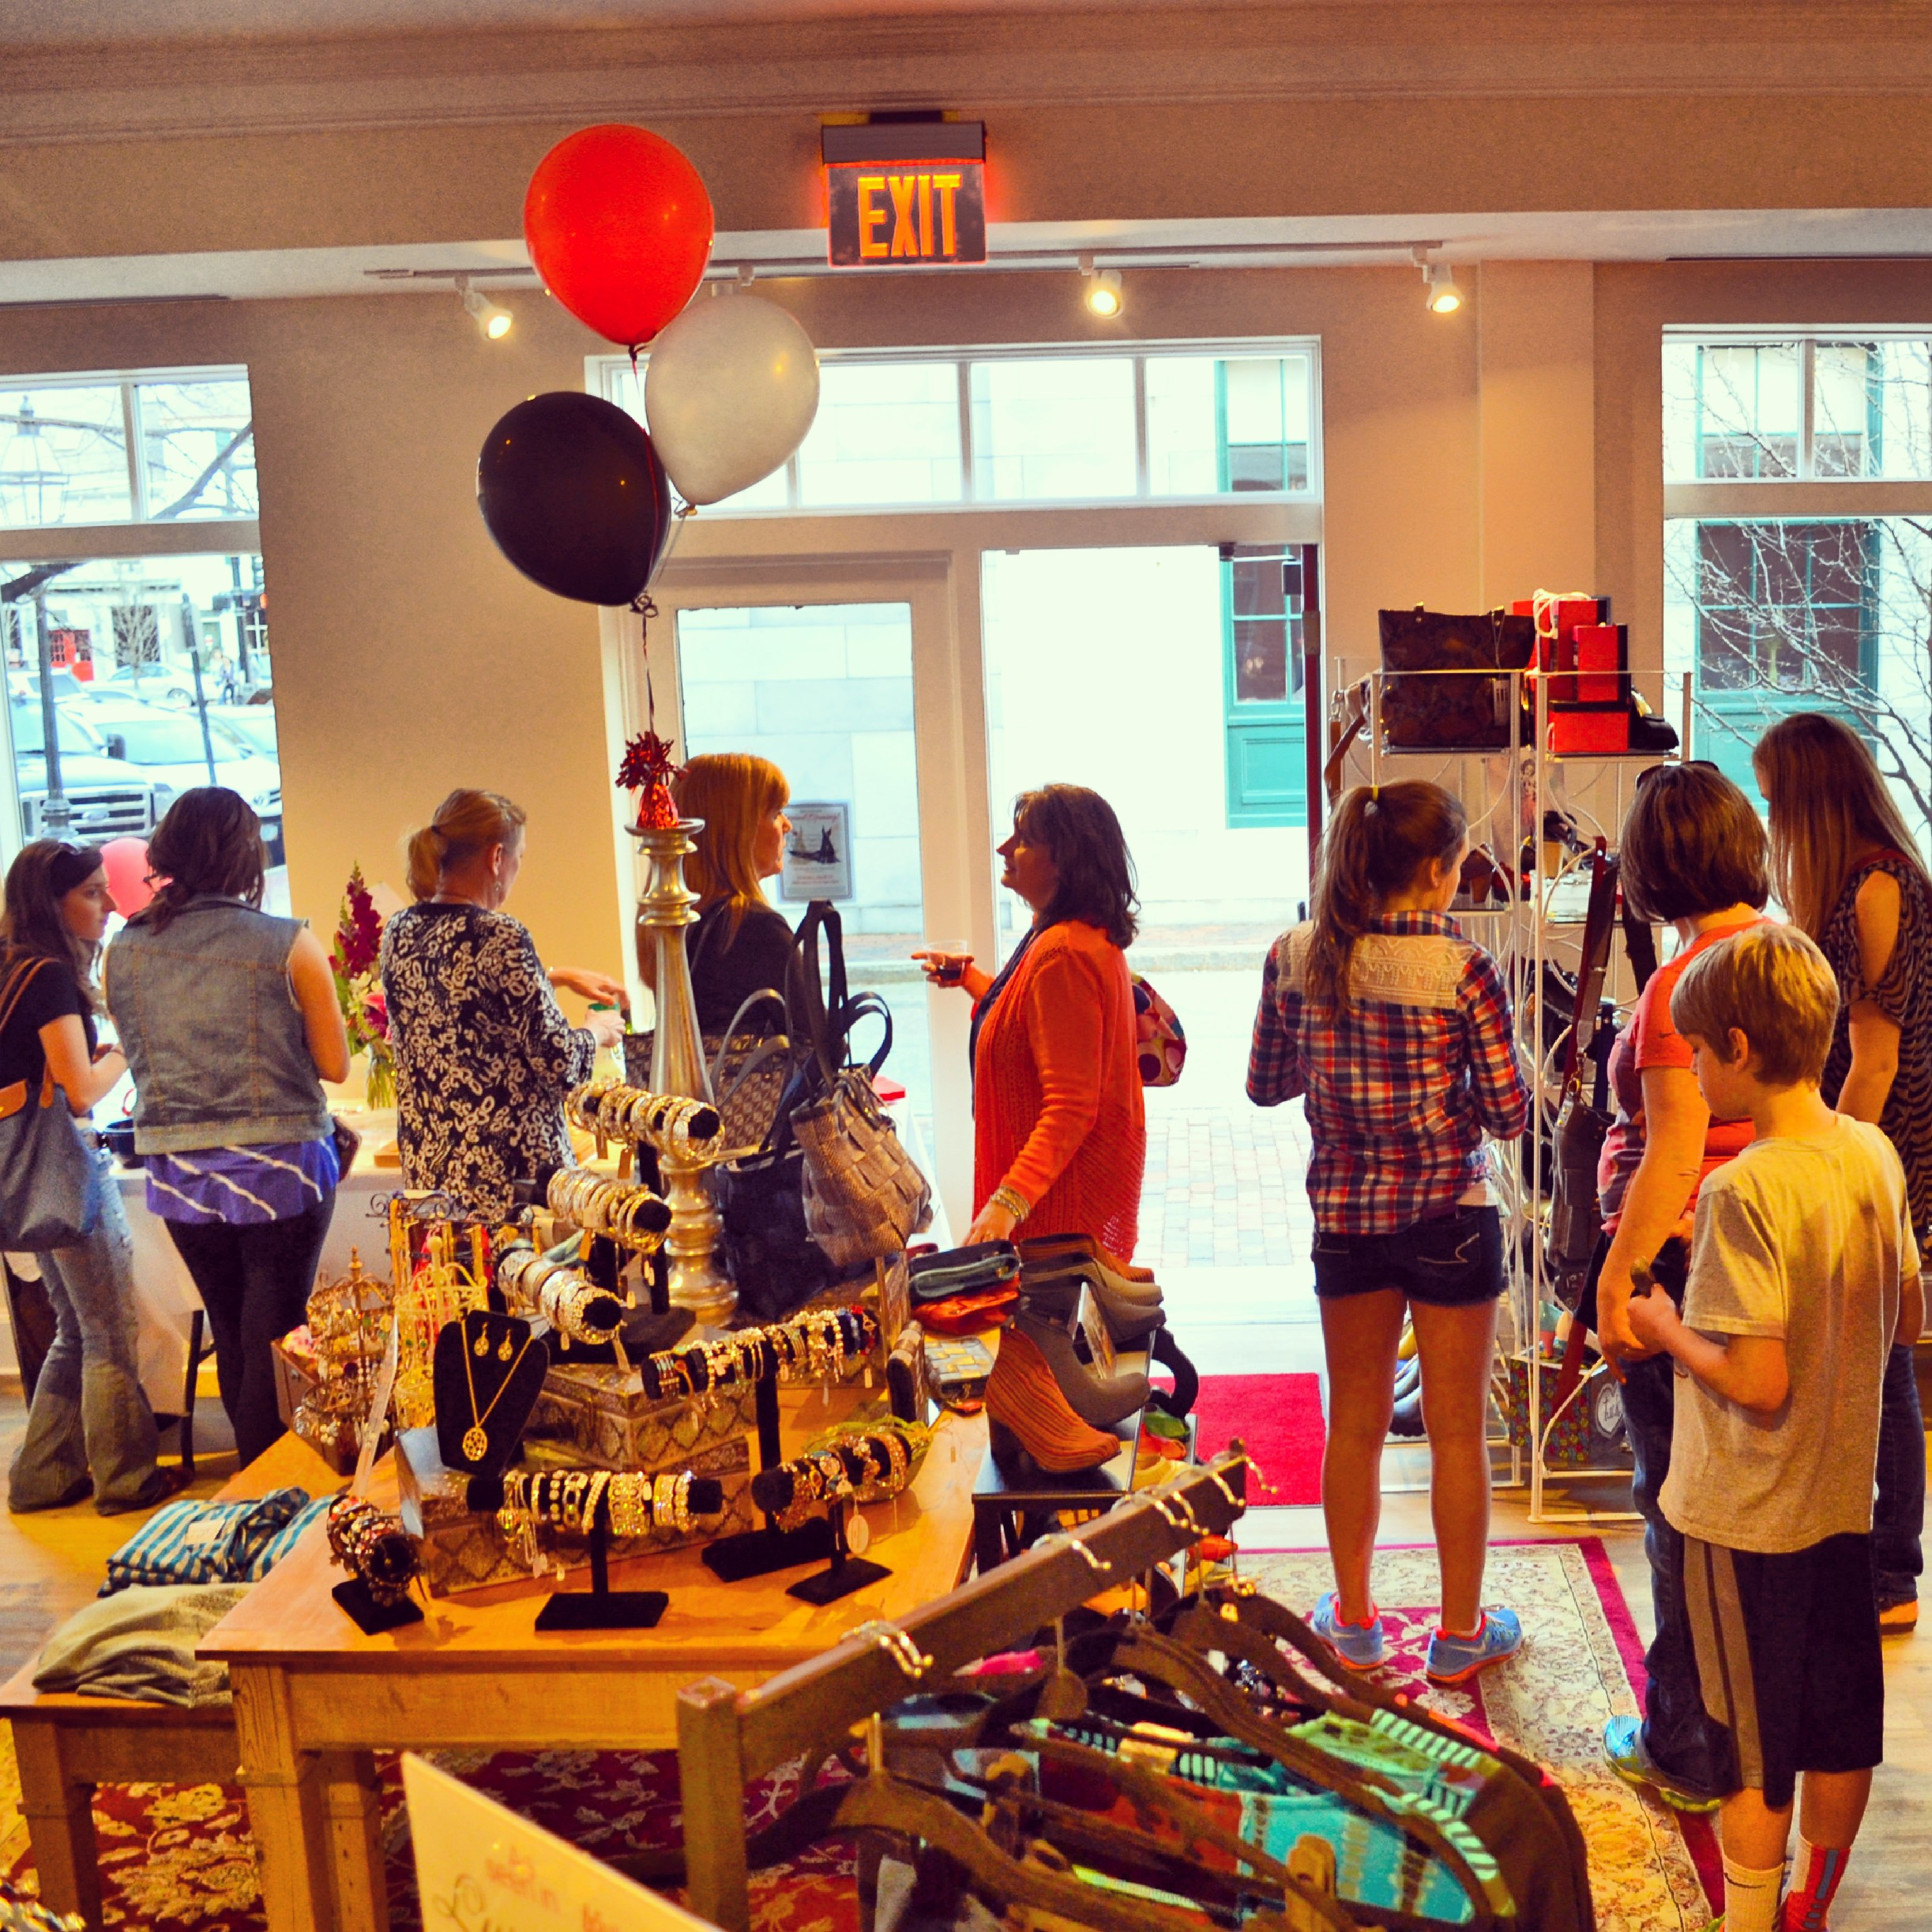 Portsmouth Nh Shopping >> Grand Opening Party!!! | Club Boutique & City Shoes NH